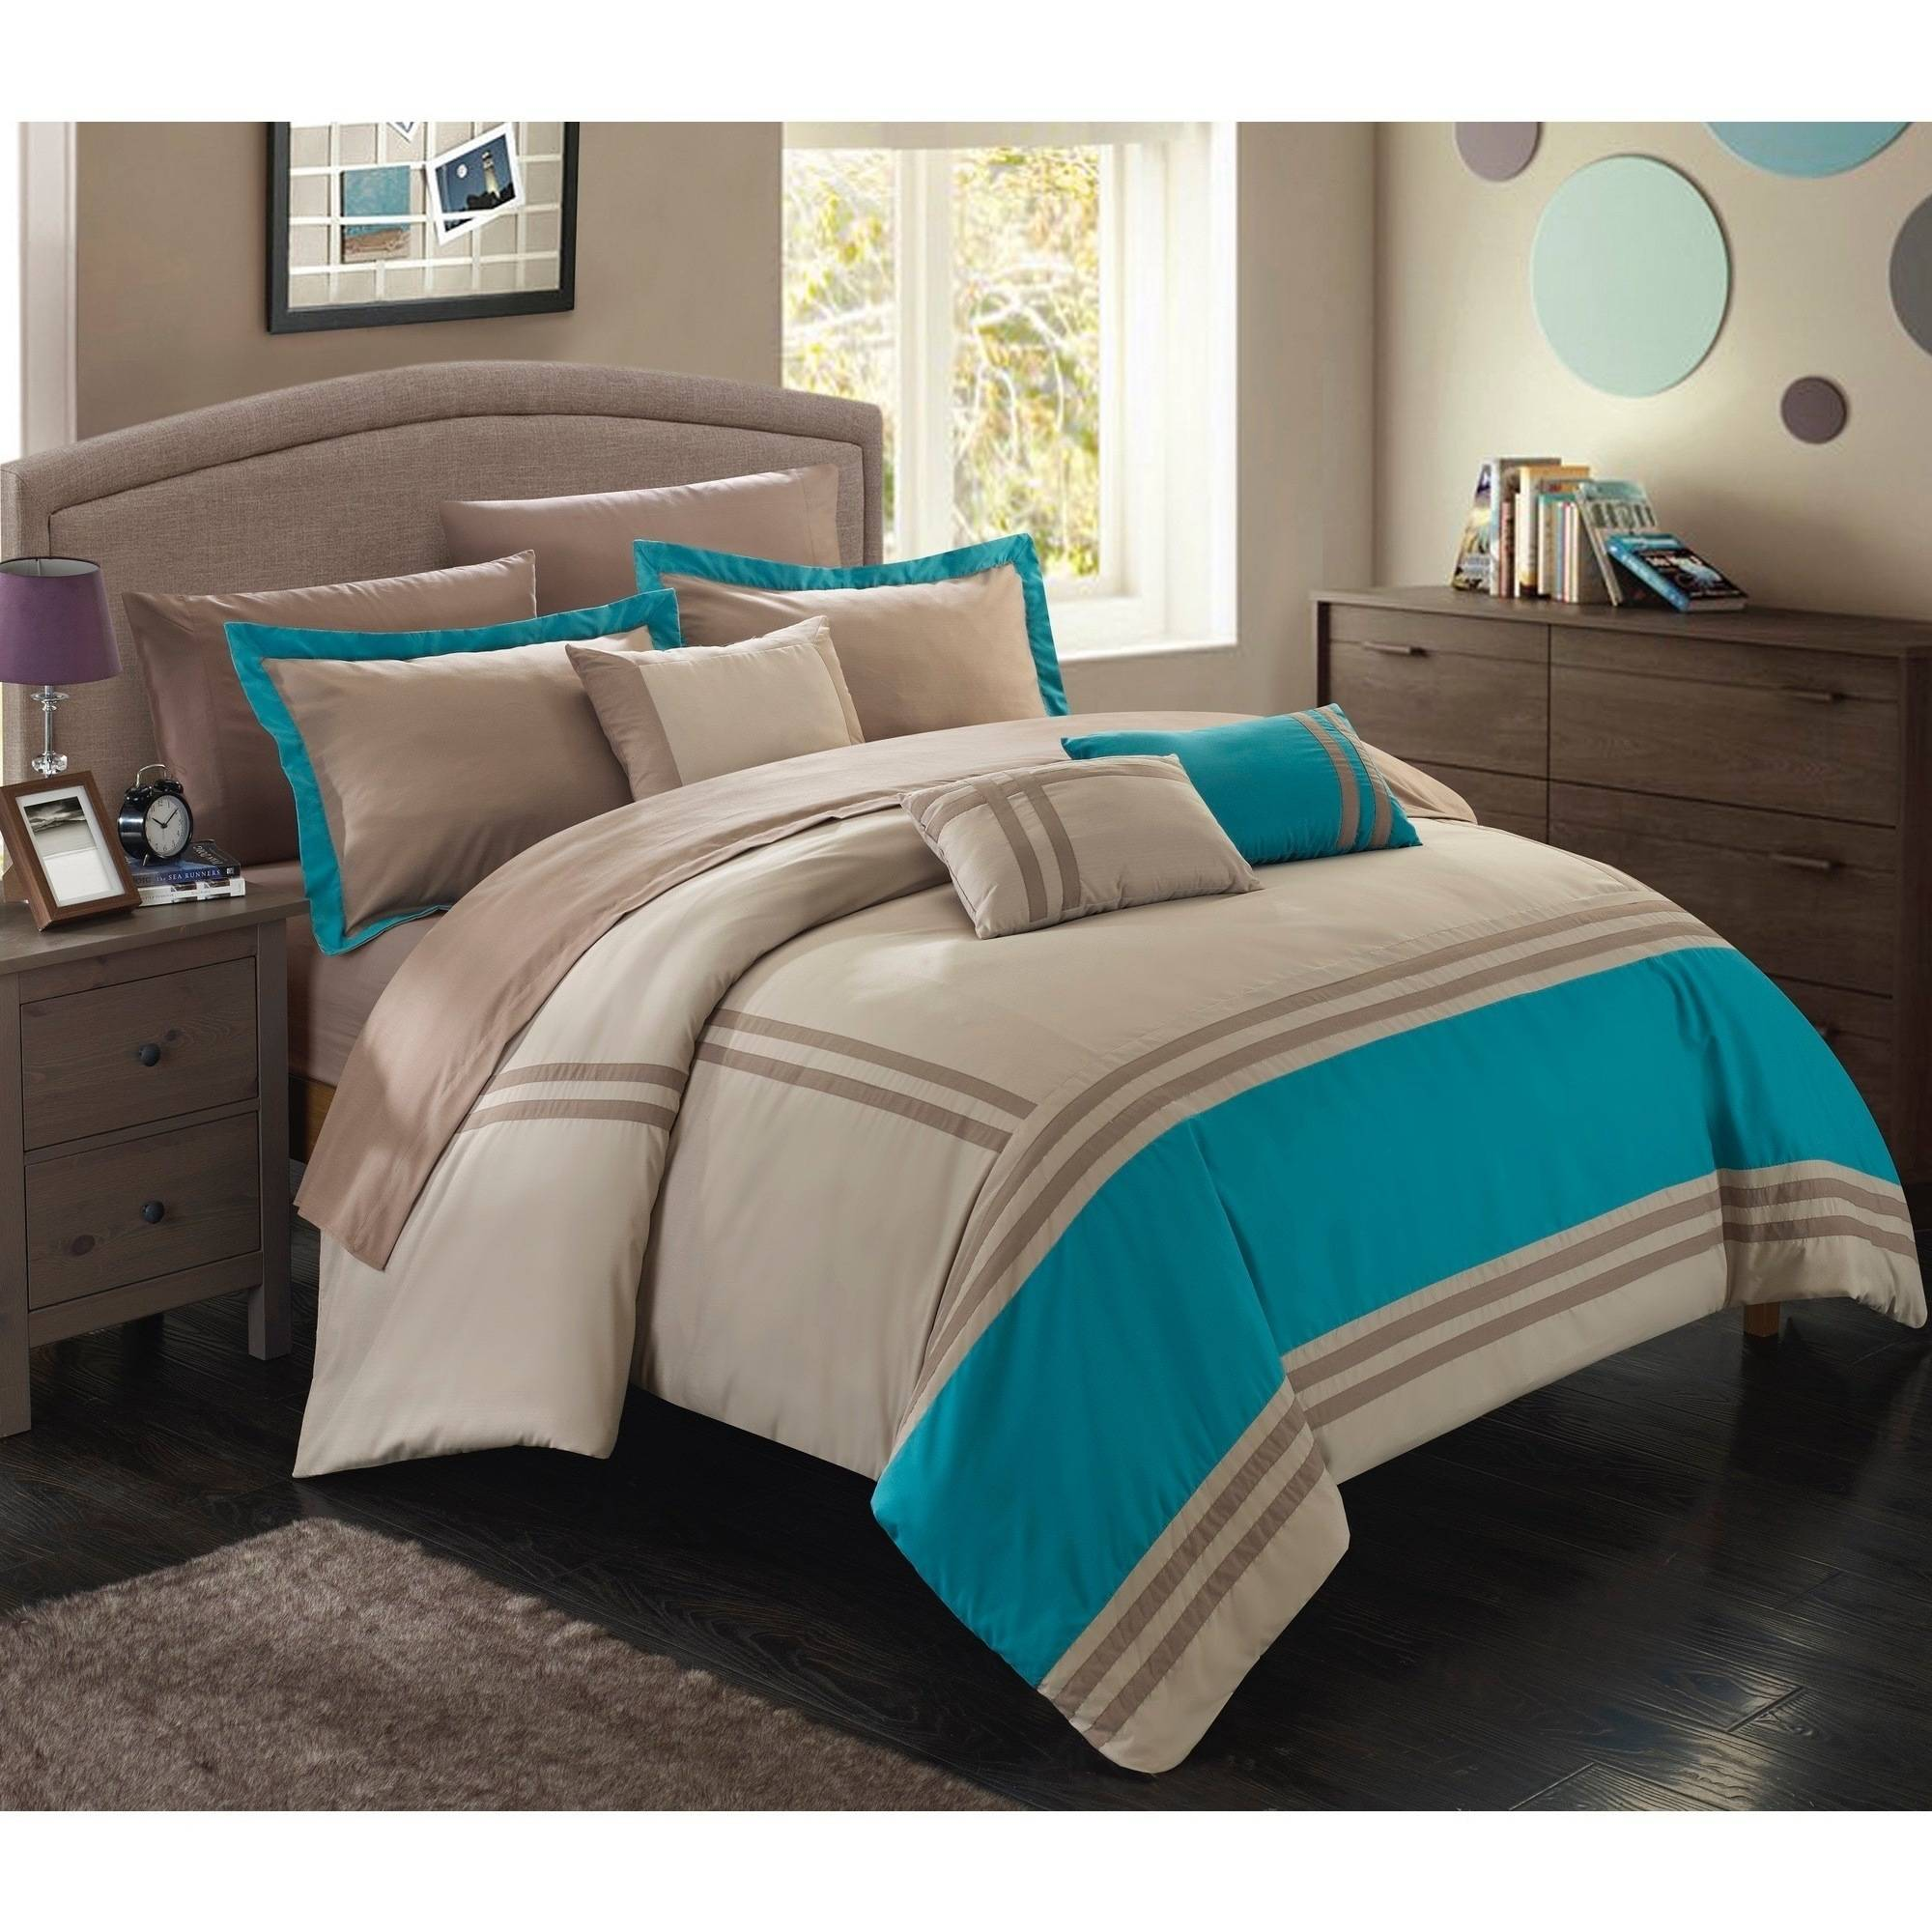 home multi fashionable sets target teen coastal king thrifty set turquoise zq barn touch jessy precious comforters pottery dream oversized tween queen comforter bedding assorted size